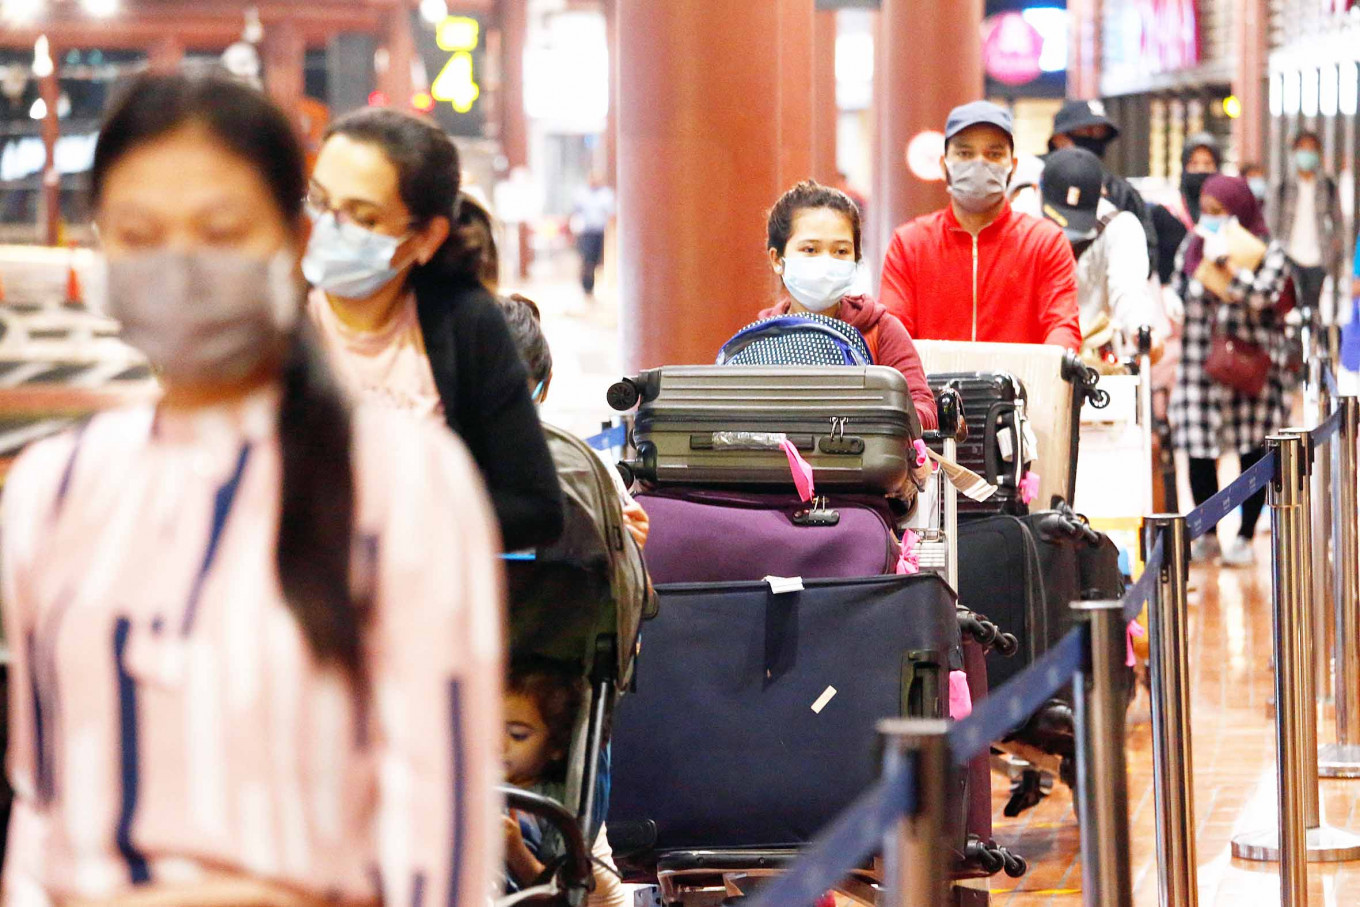 COVID-19: Govt repatriates 330 Indonesians from India, more to come home